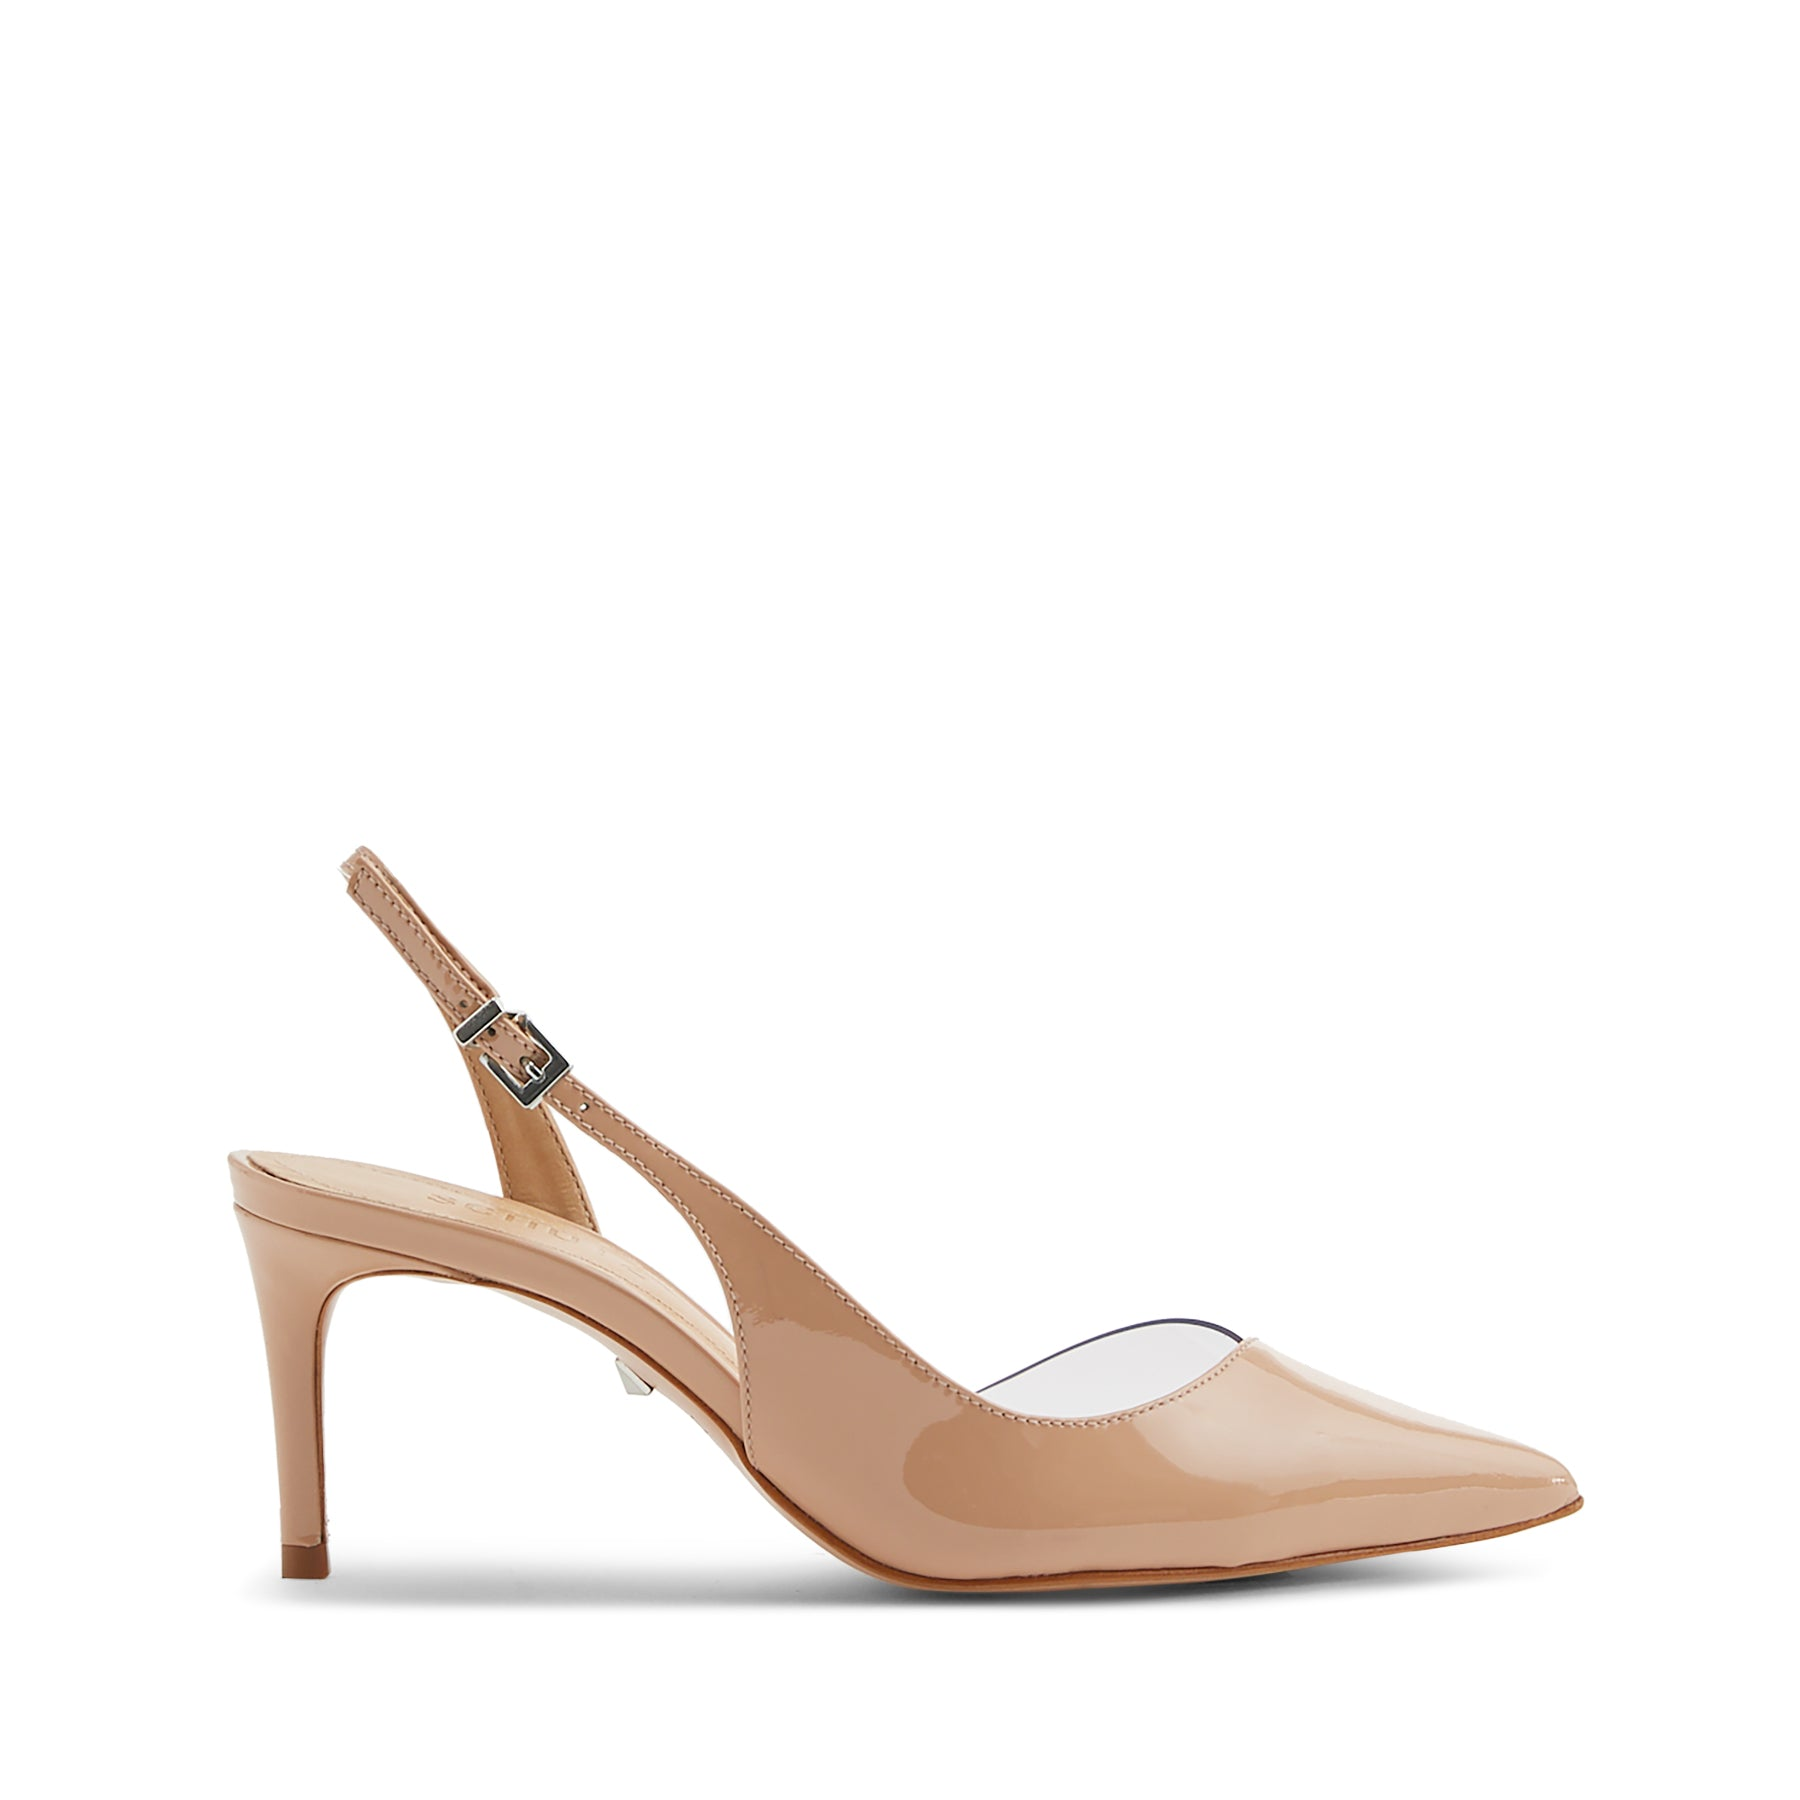 Anabel Slingback Pumps Honey Beige Patent Leather